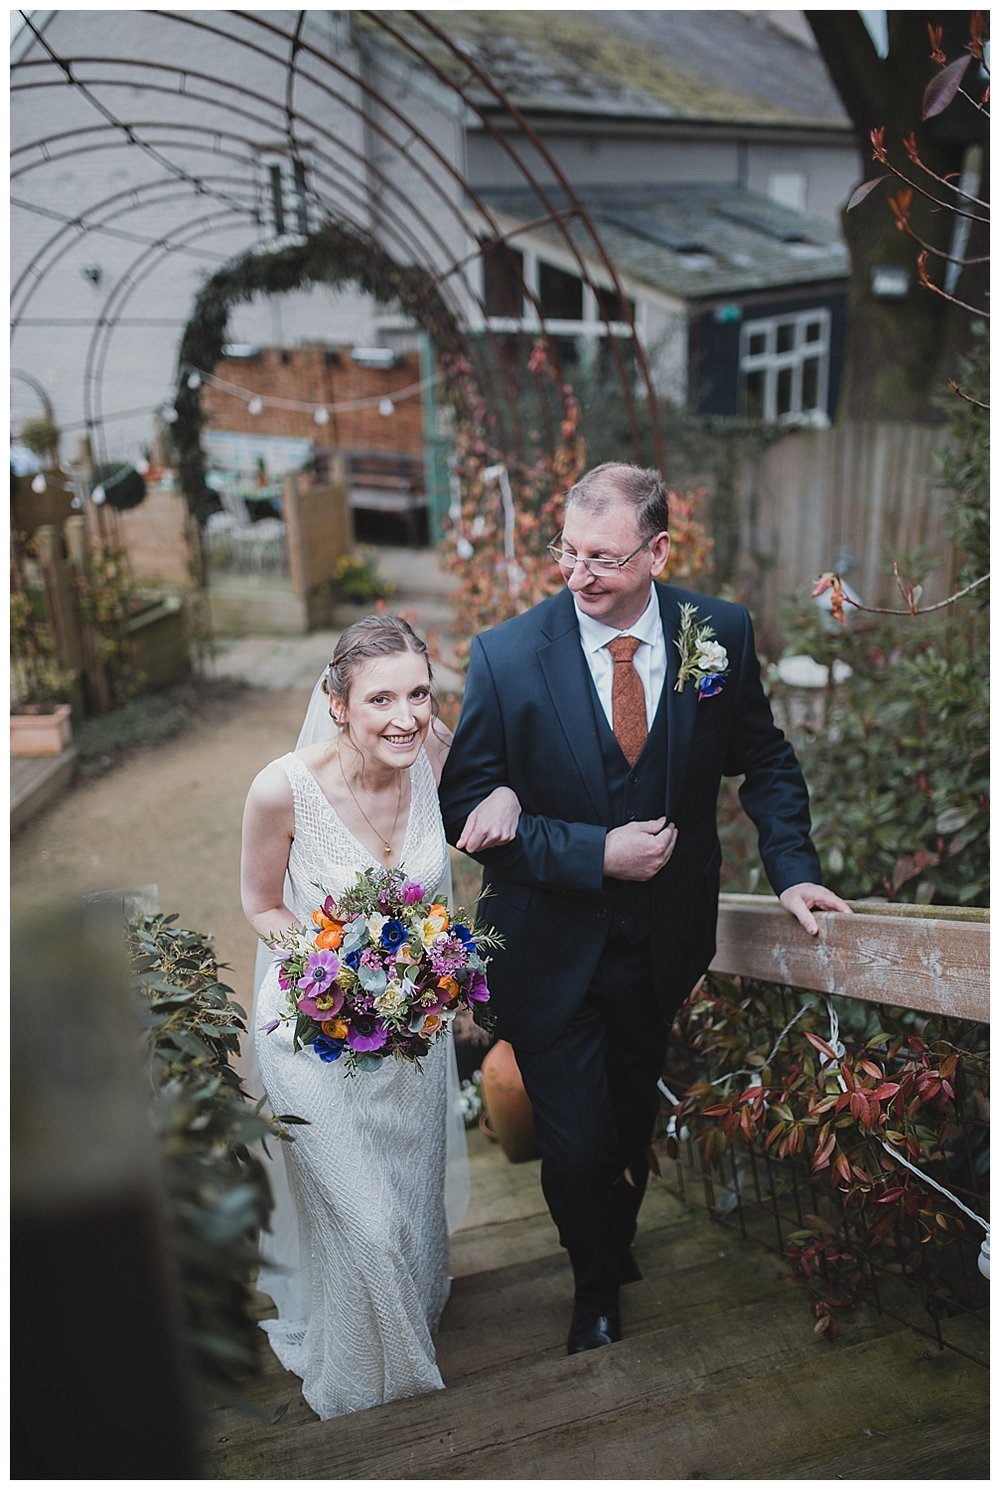 Bride and father arrive for the ceremony. Bright spring bouquet by Living Colours.